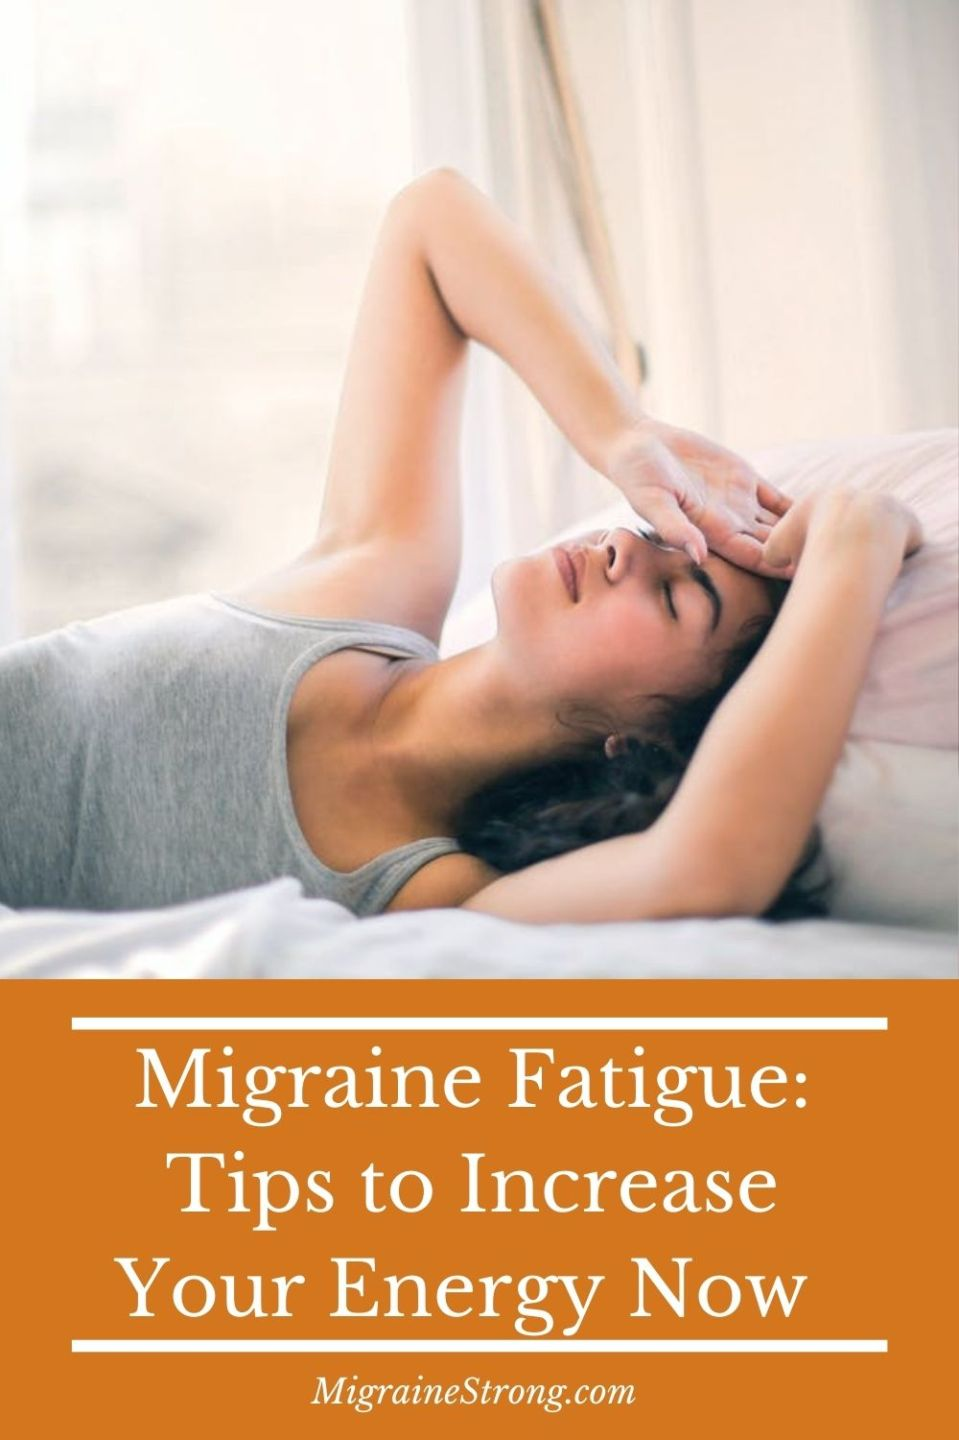 Migraine and Fatigue: Tips to Increase Energy Now